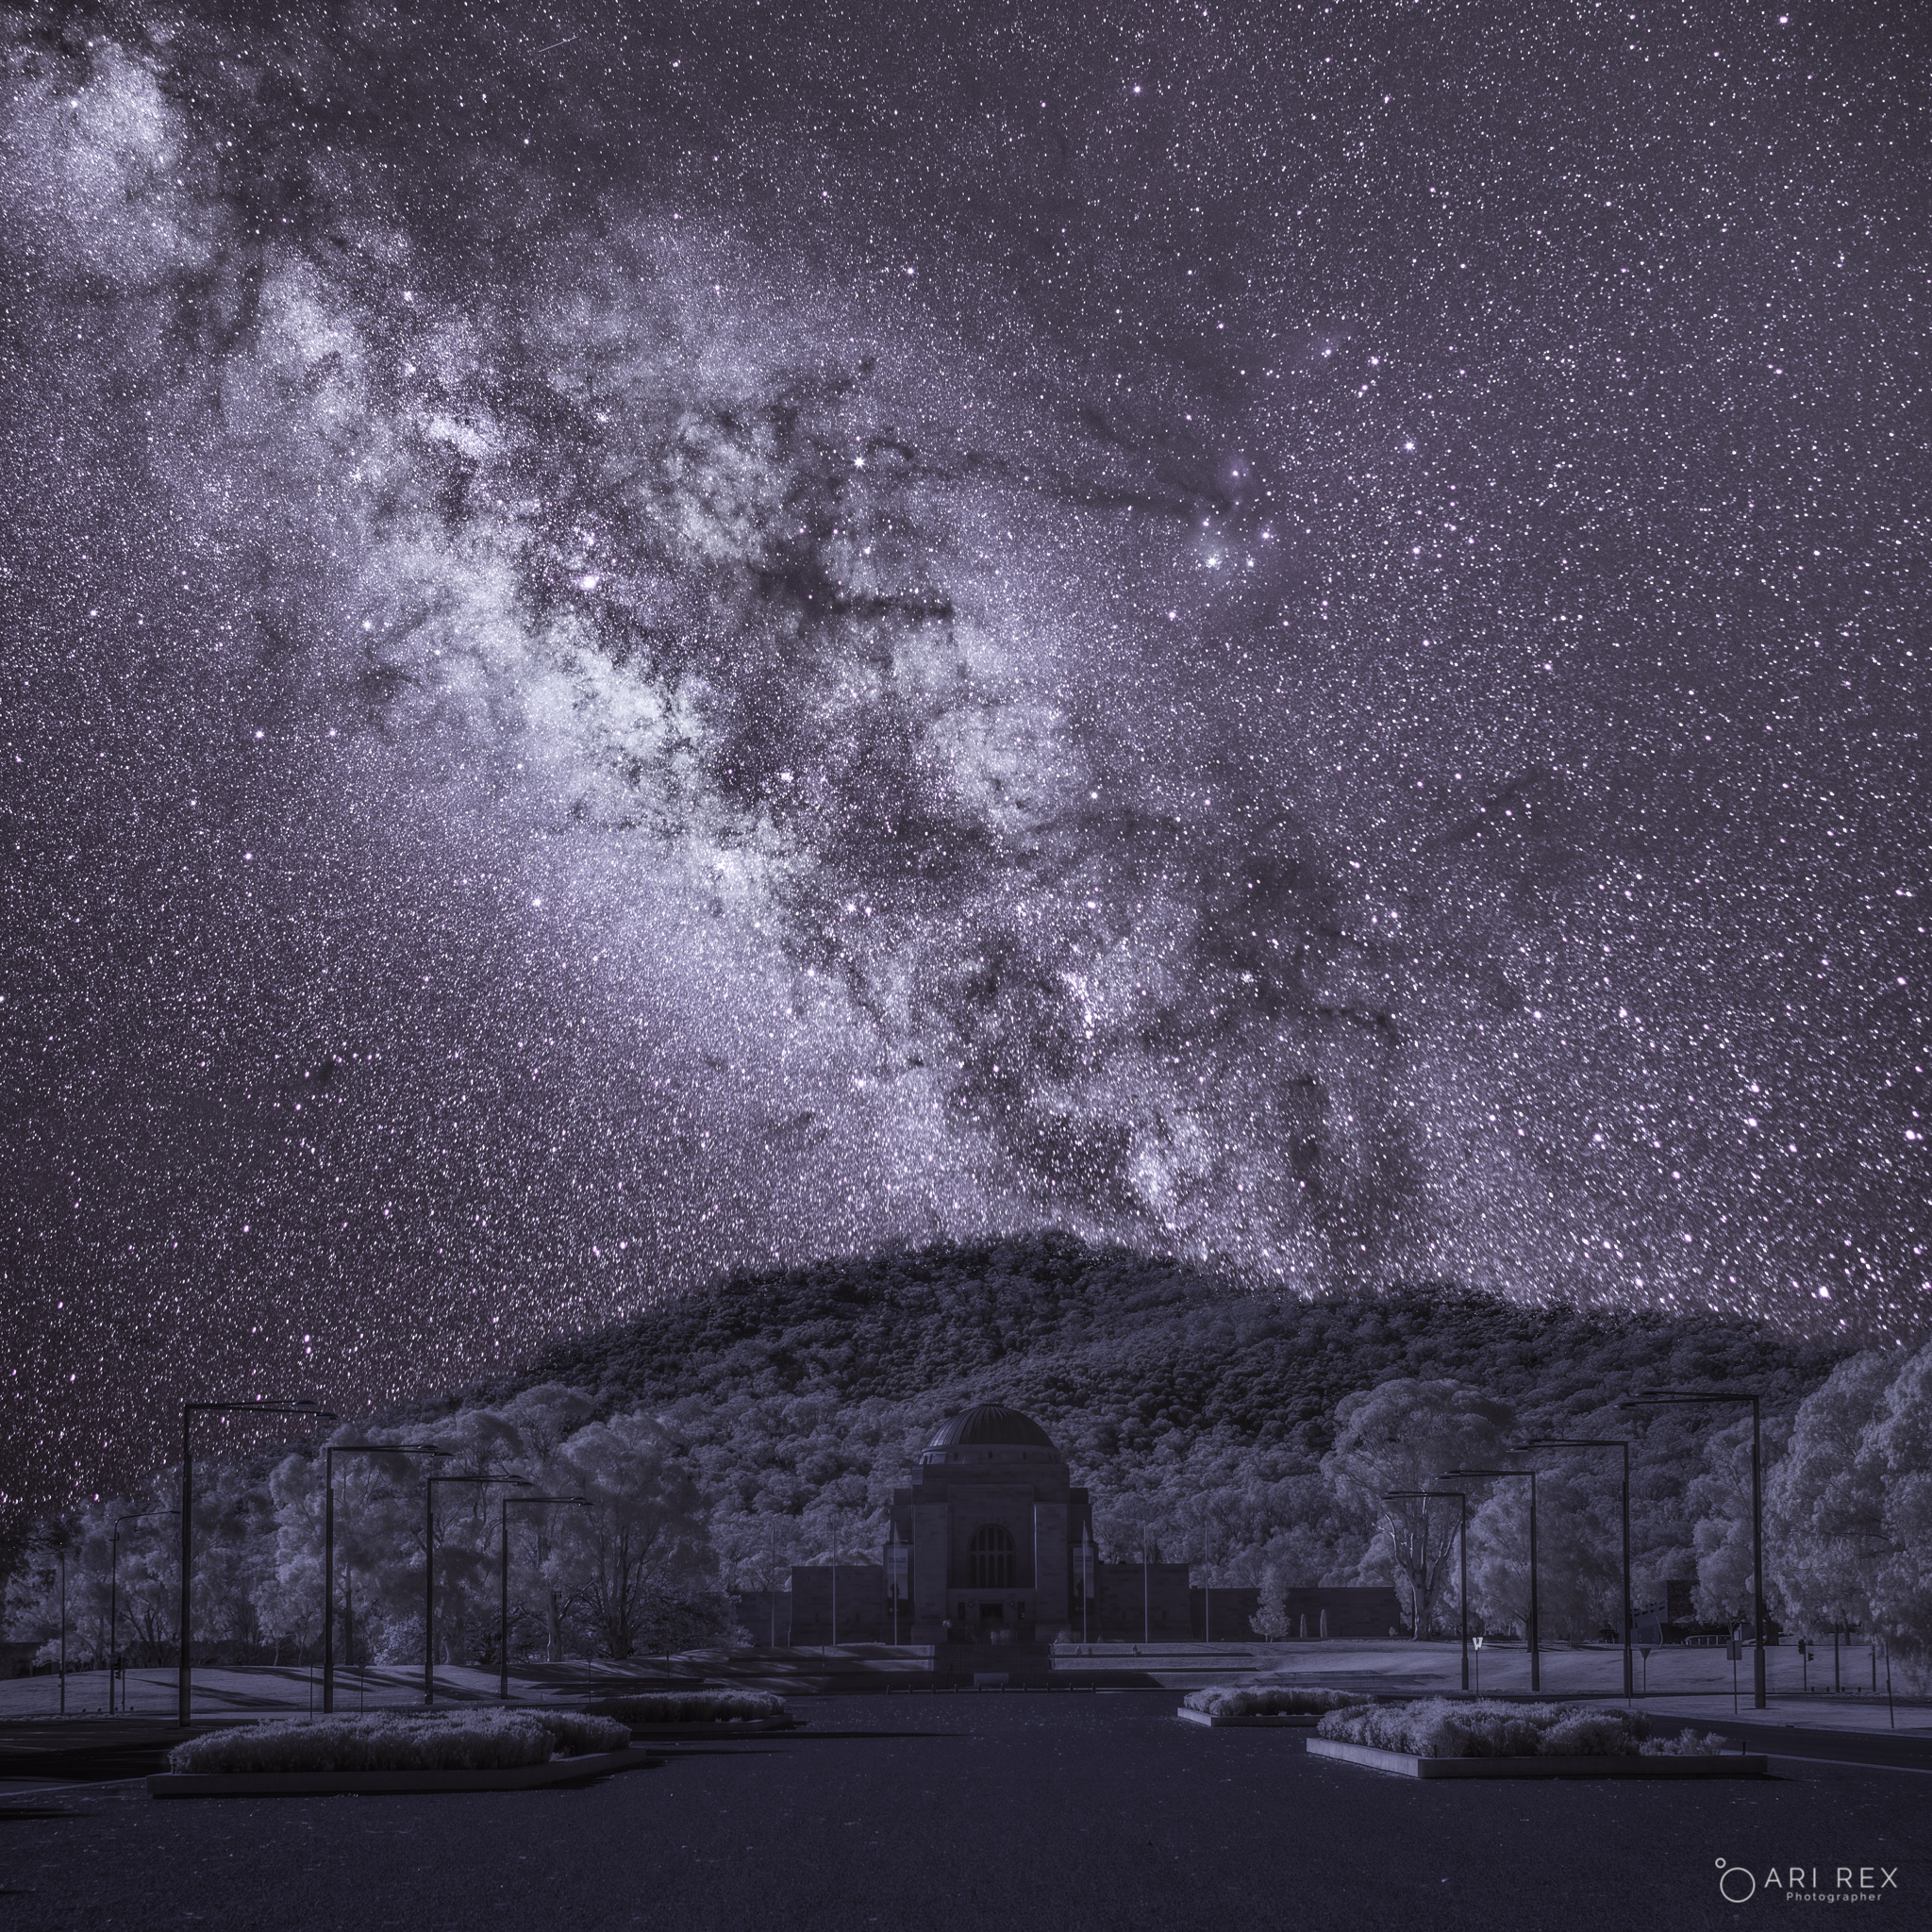 War Memorial & Milky Way in Infrared